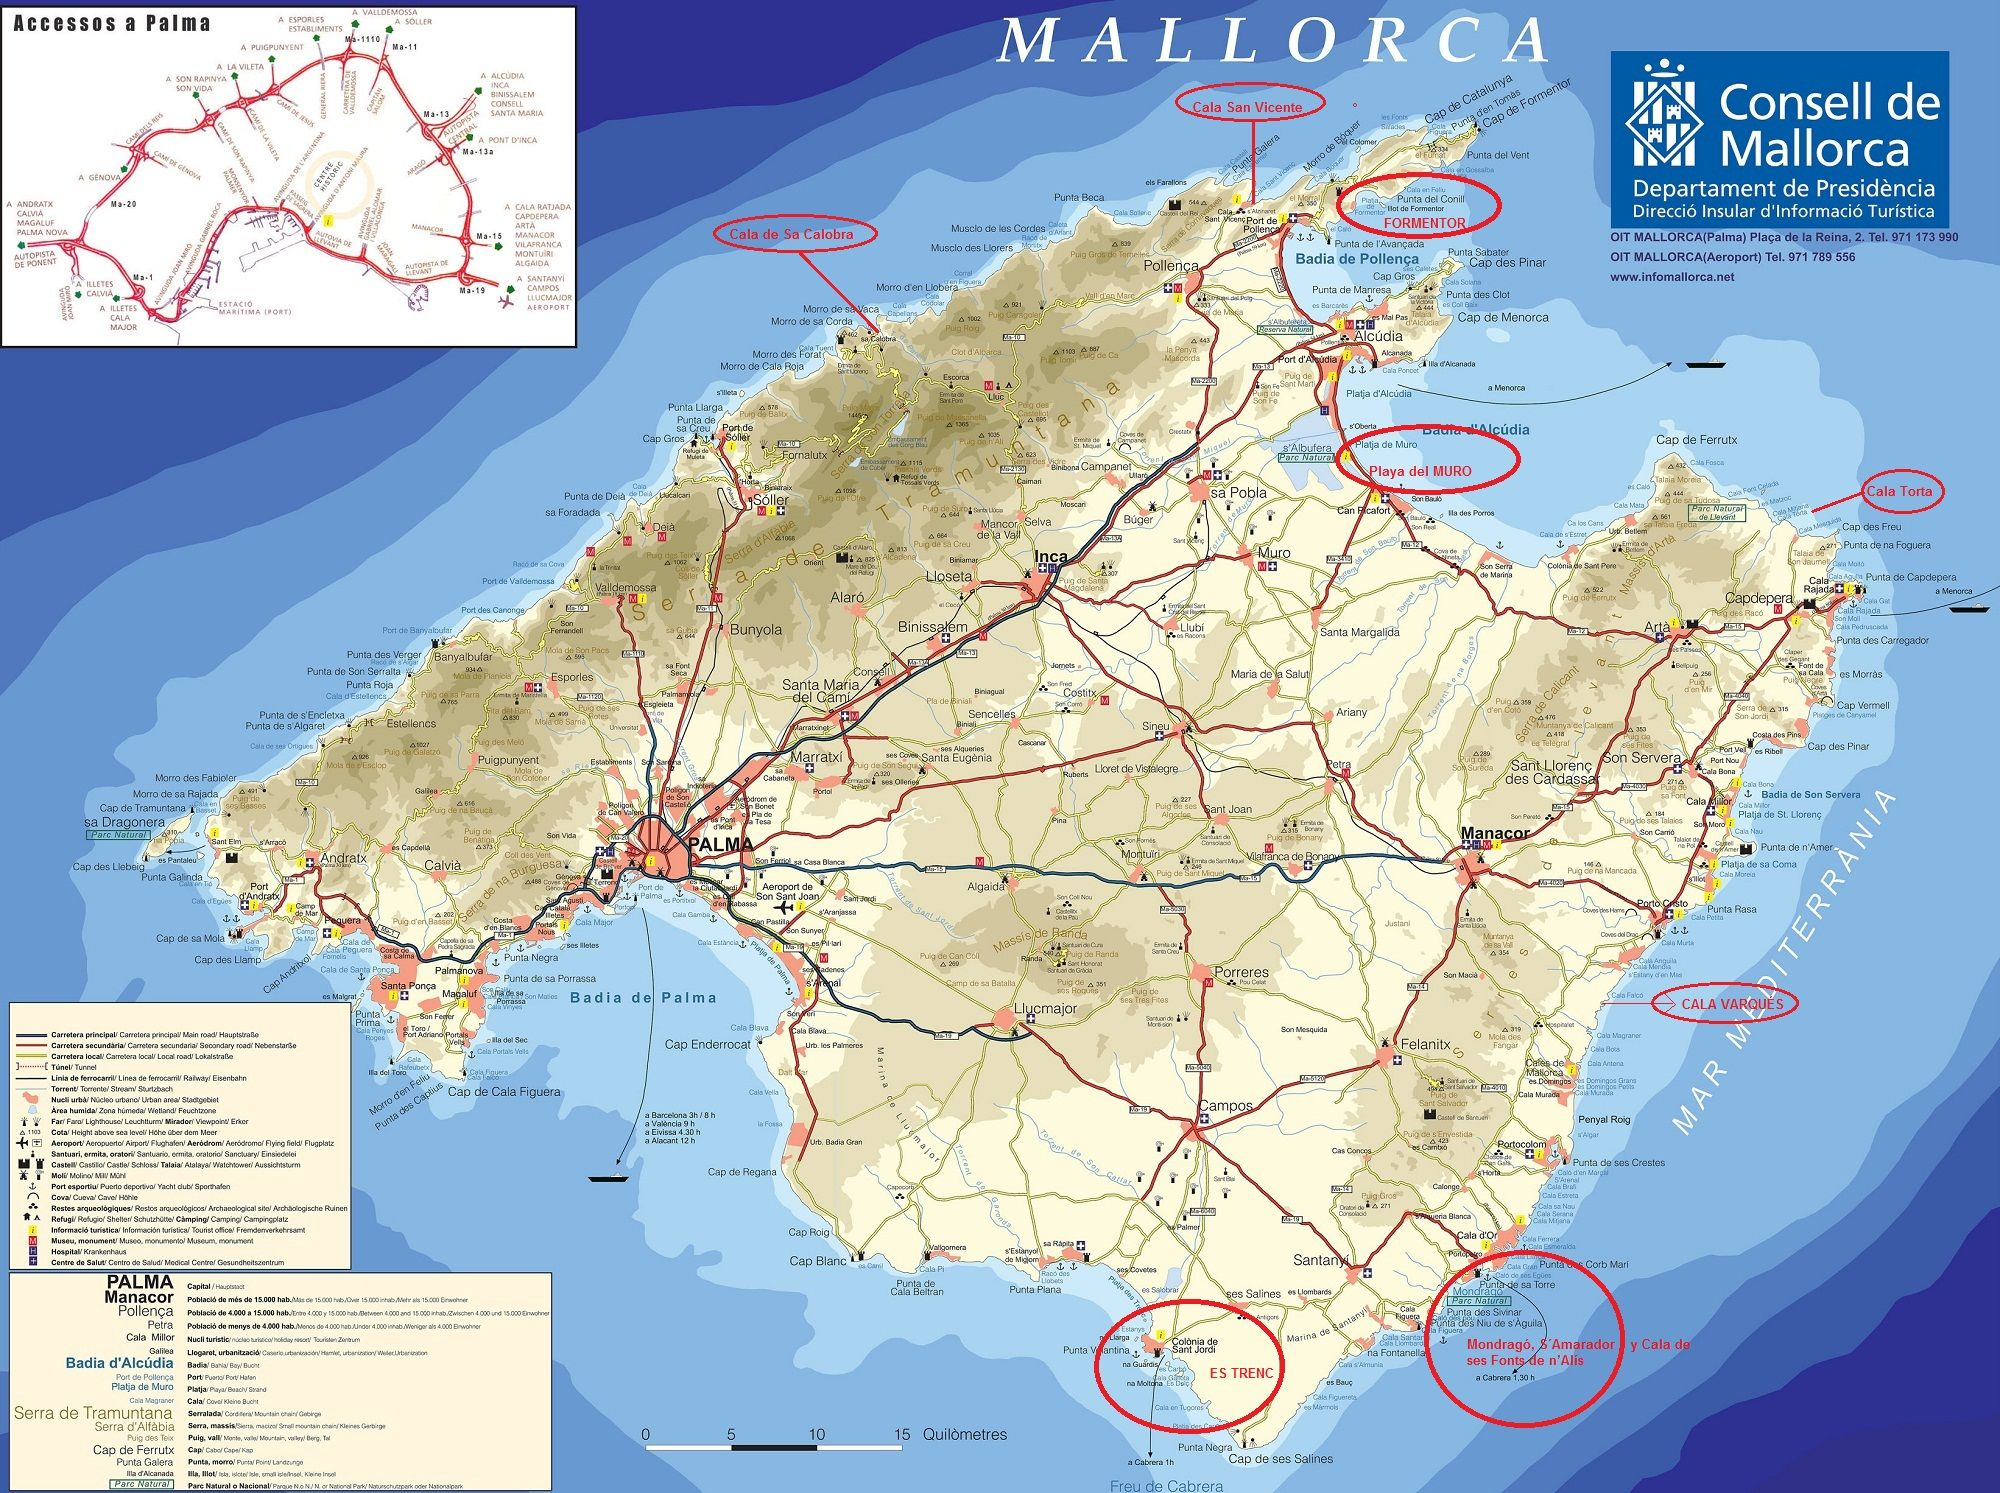 Map of coves and beaches of Mallorca click to enlarge